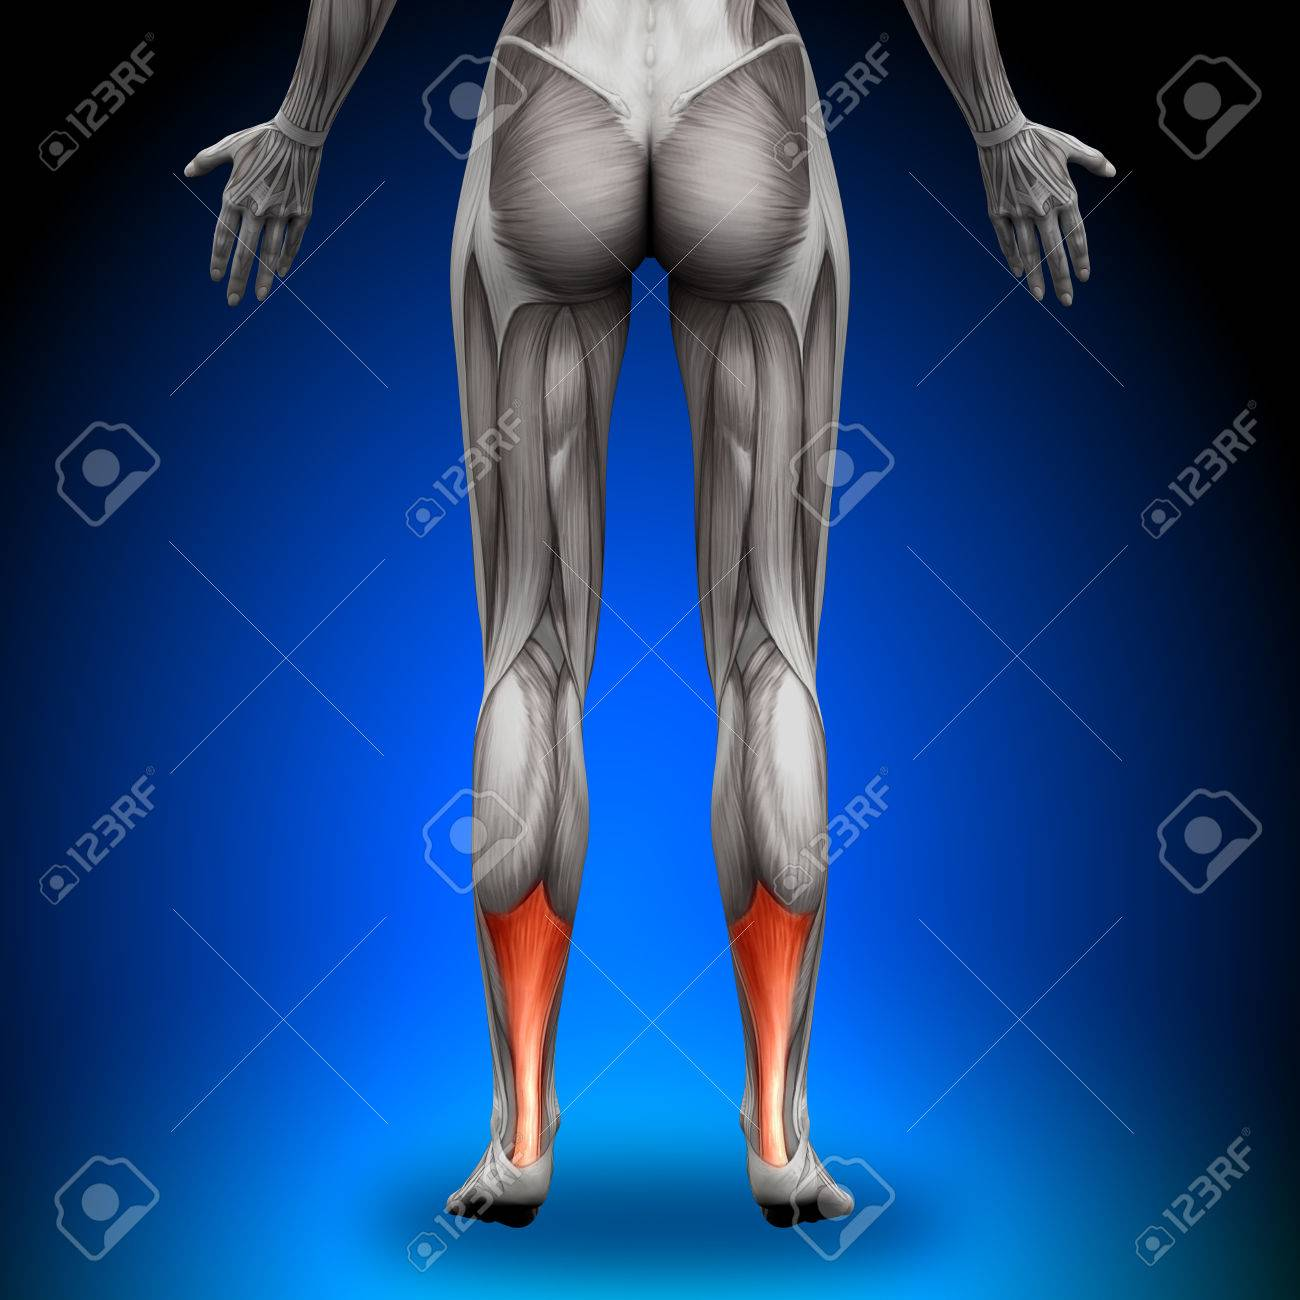 Calves Achilles Tendon - Female Anatomy Muscles Stock Photo, Picture ...